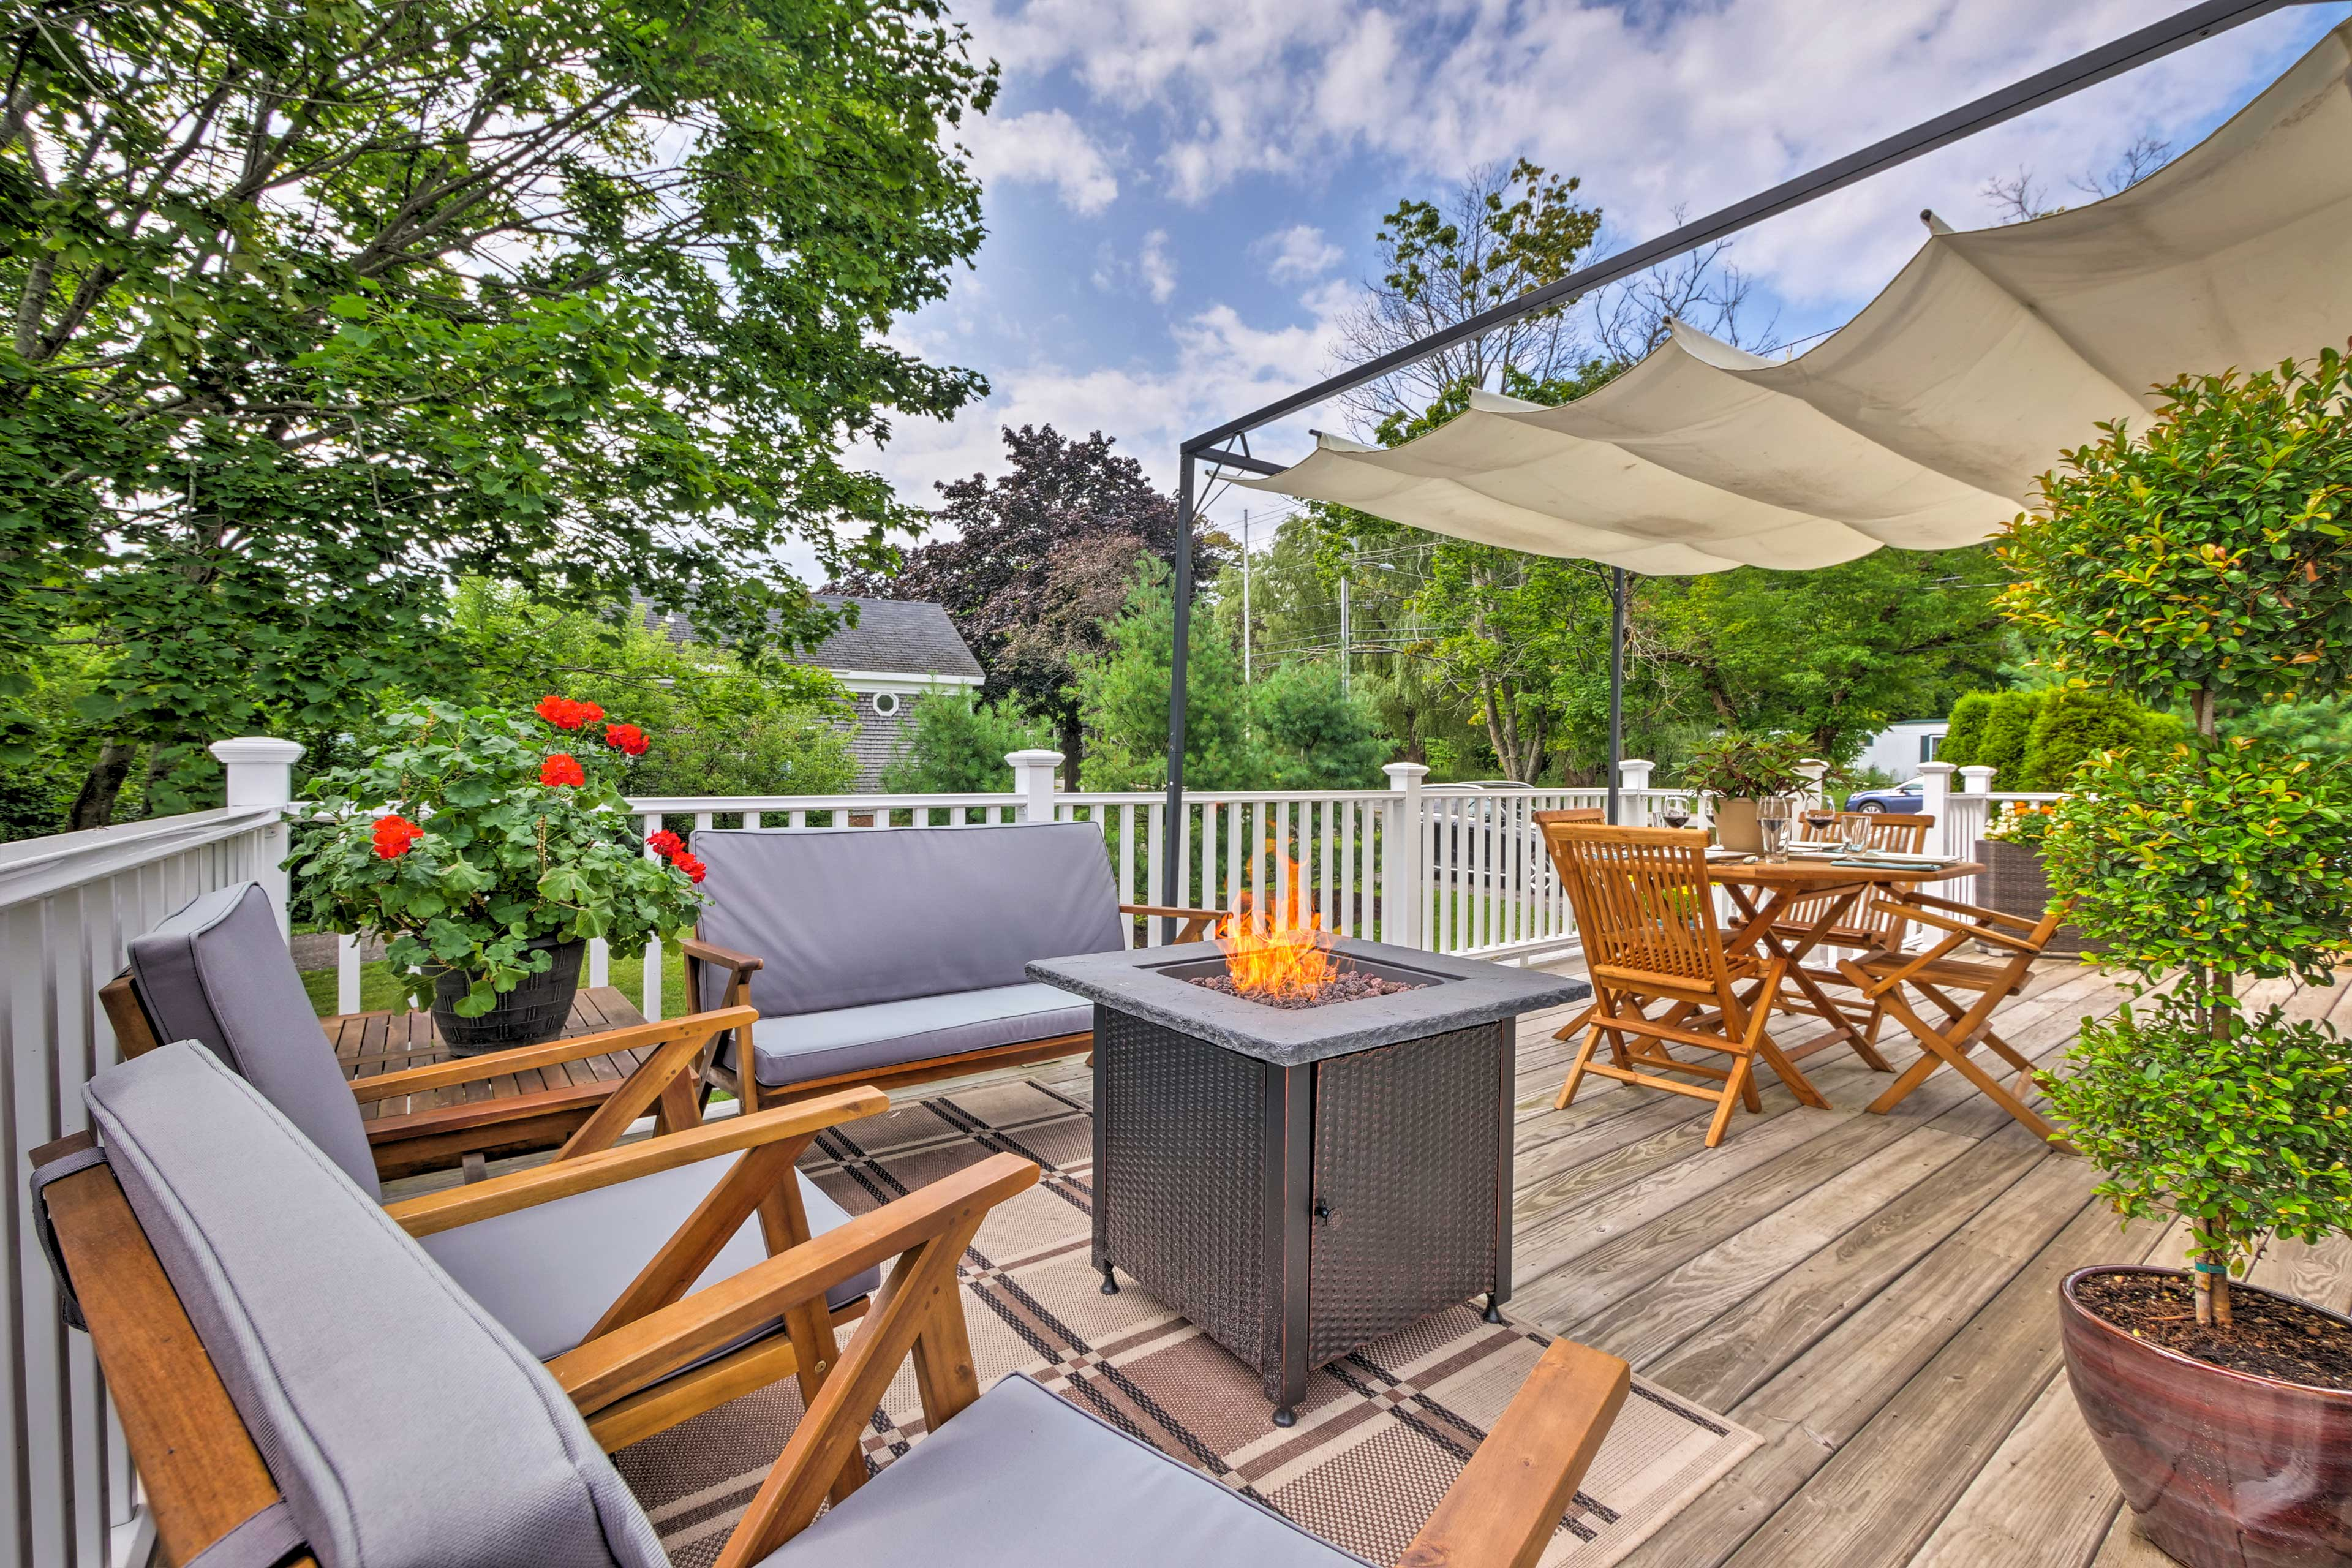 Make this 3-bedroom, 2-bath vacation rental house your home base in Rockland!